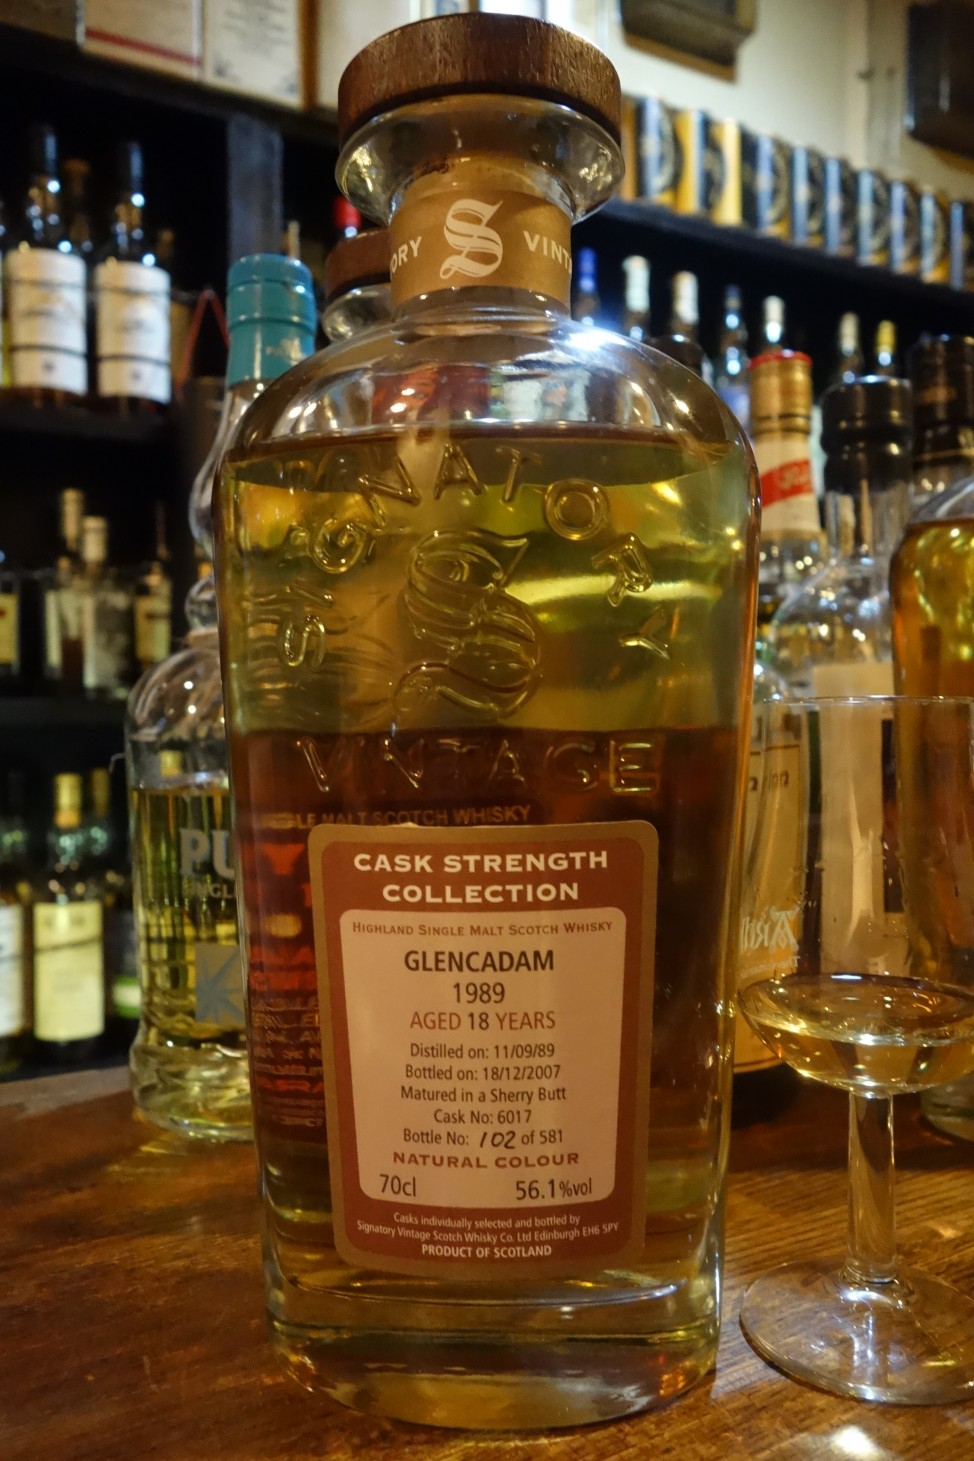 GLENCADAM 1989-2007 18yo SIGNATORY VINTAGE CASK STRENGTH COLLECTION #6017